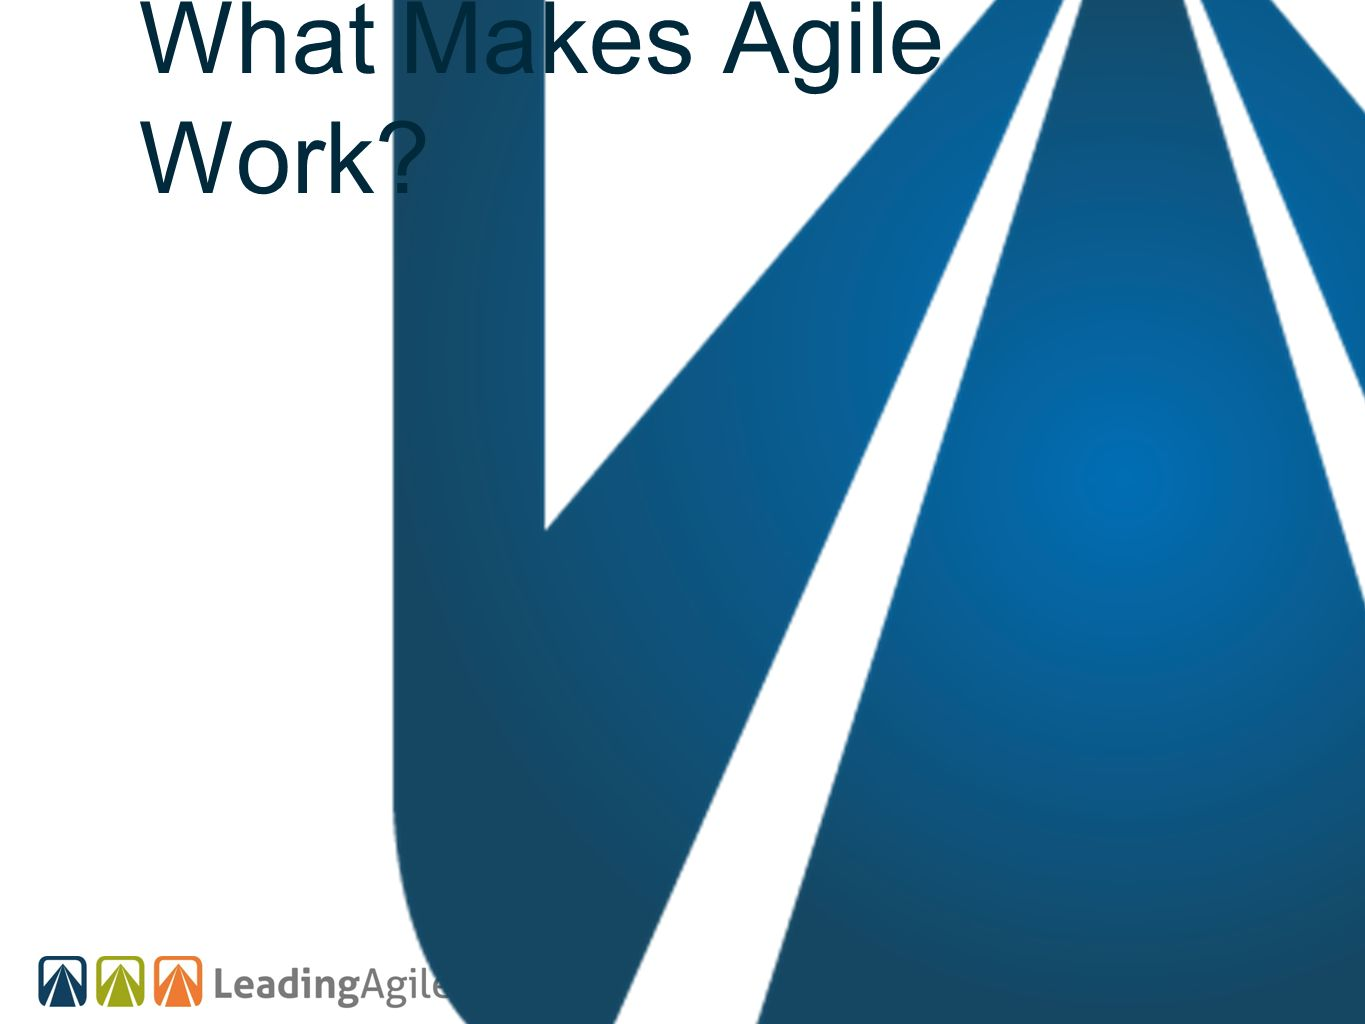 What Makes Agile Work